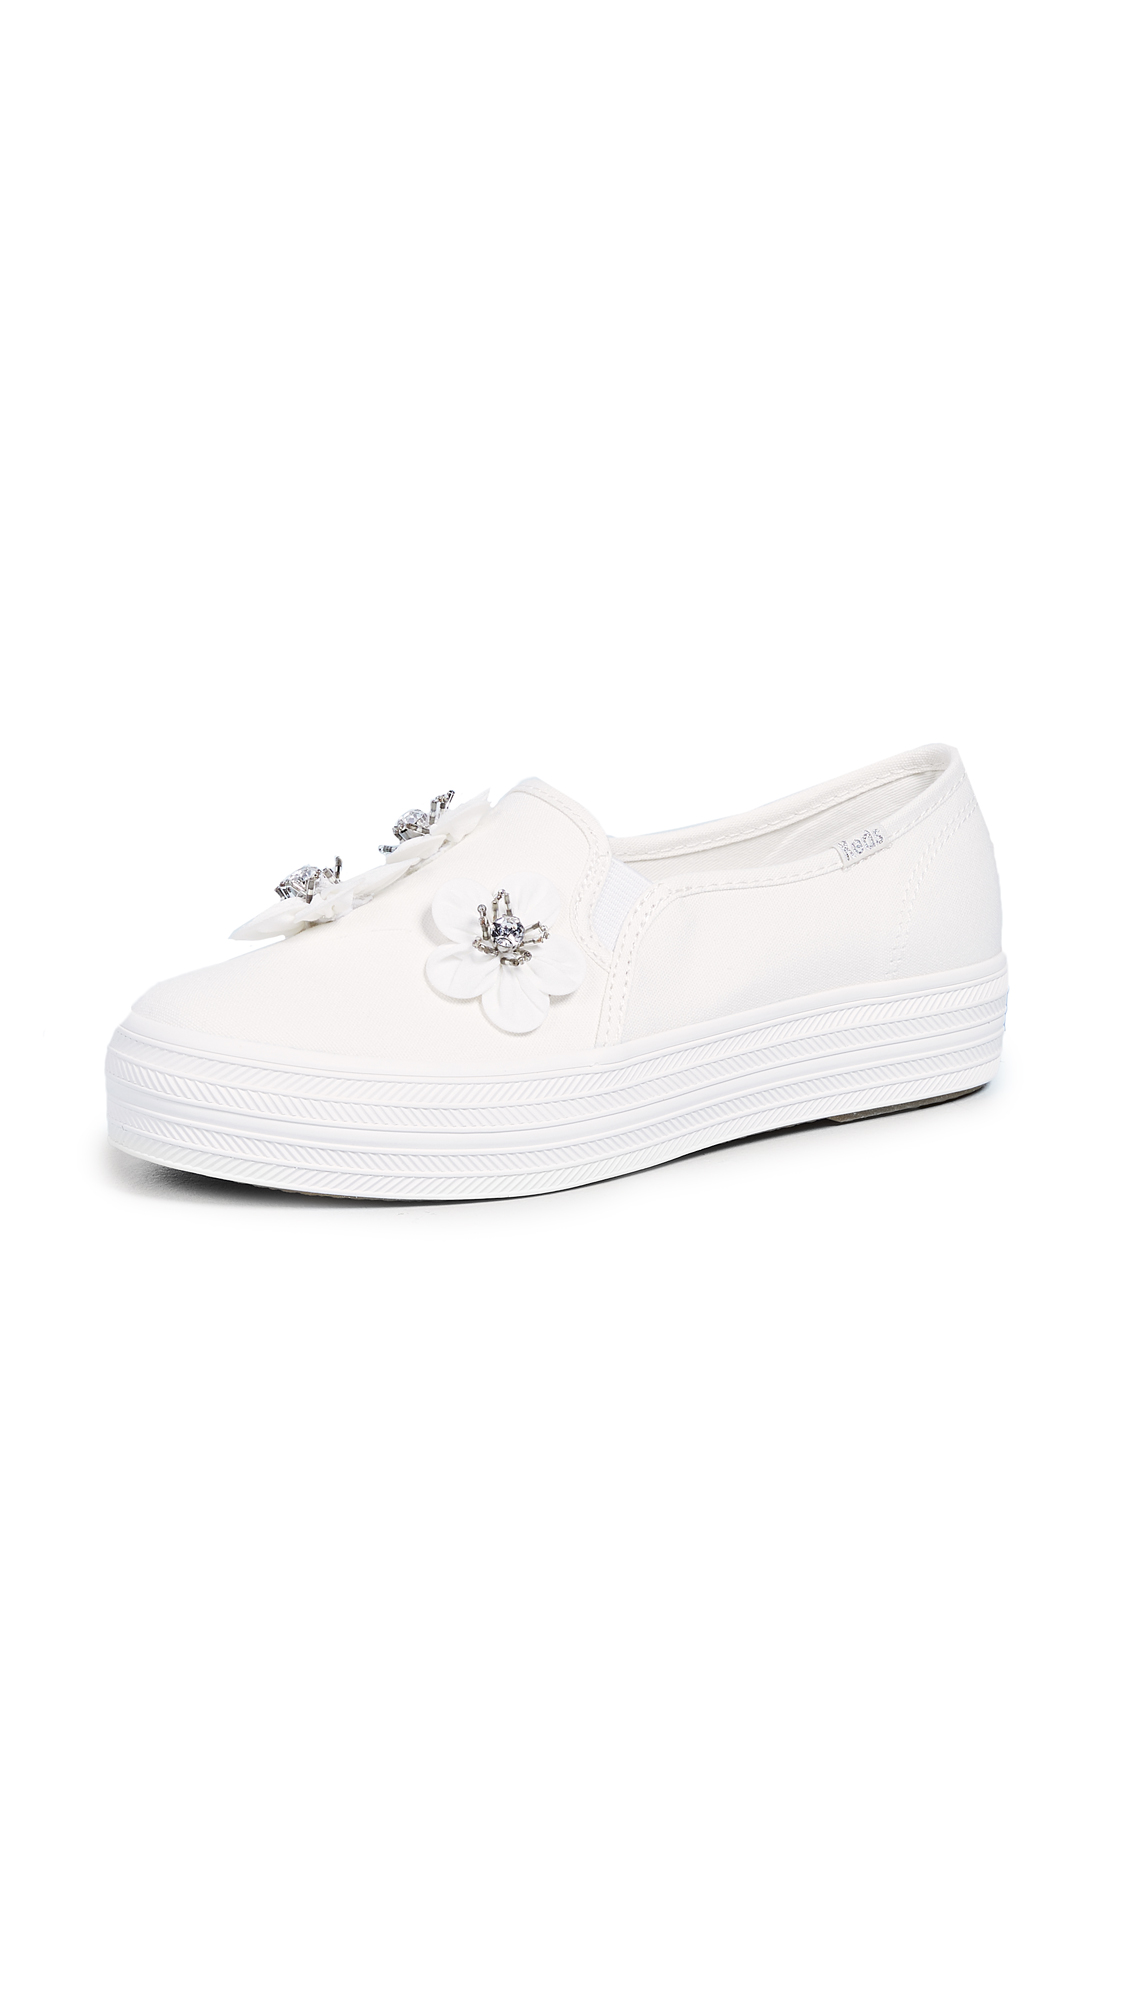 3829543bb43 Keds Canvas Sneakers - Buy Best Keds Canvas Sneakers from Fashion  Influencers